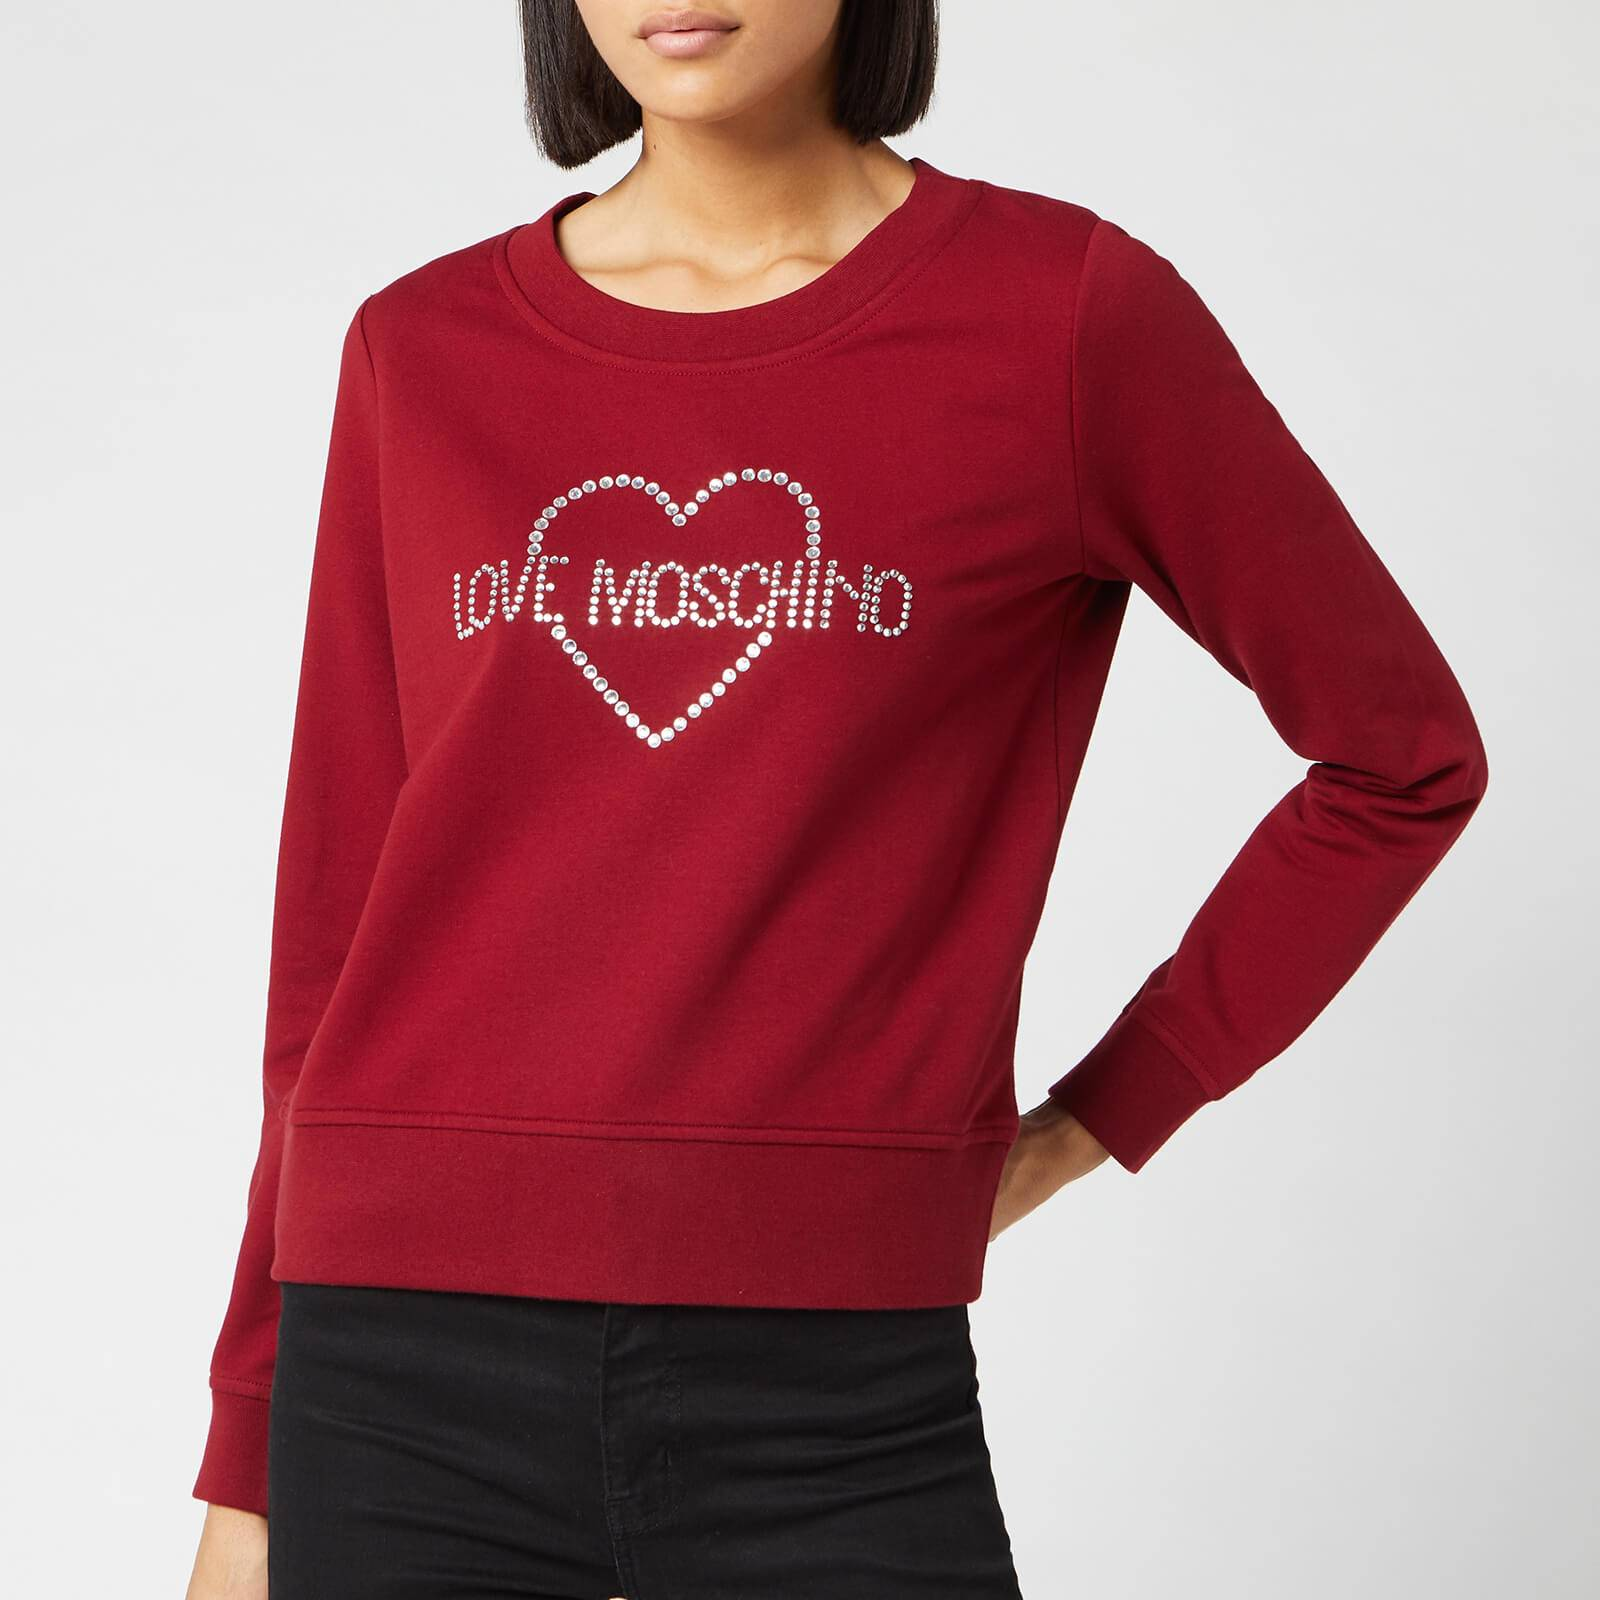 Moschino Love Moschino Women's Crystal Logo Sweater - Red - IT 40/UK 8 - Red